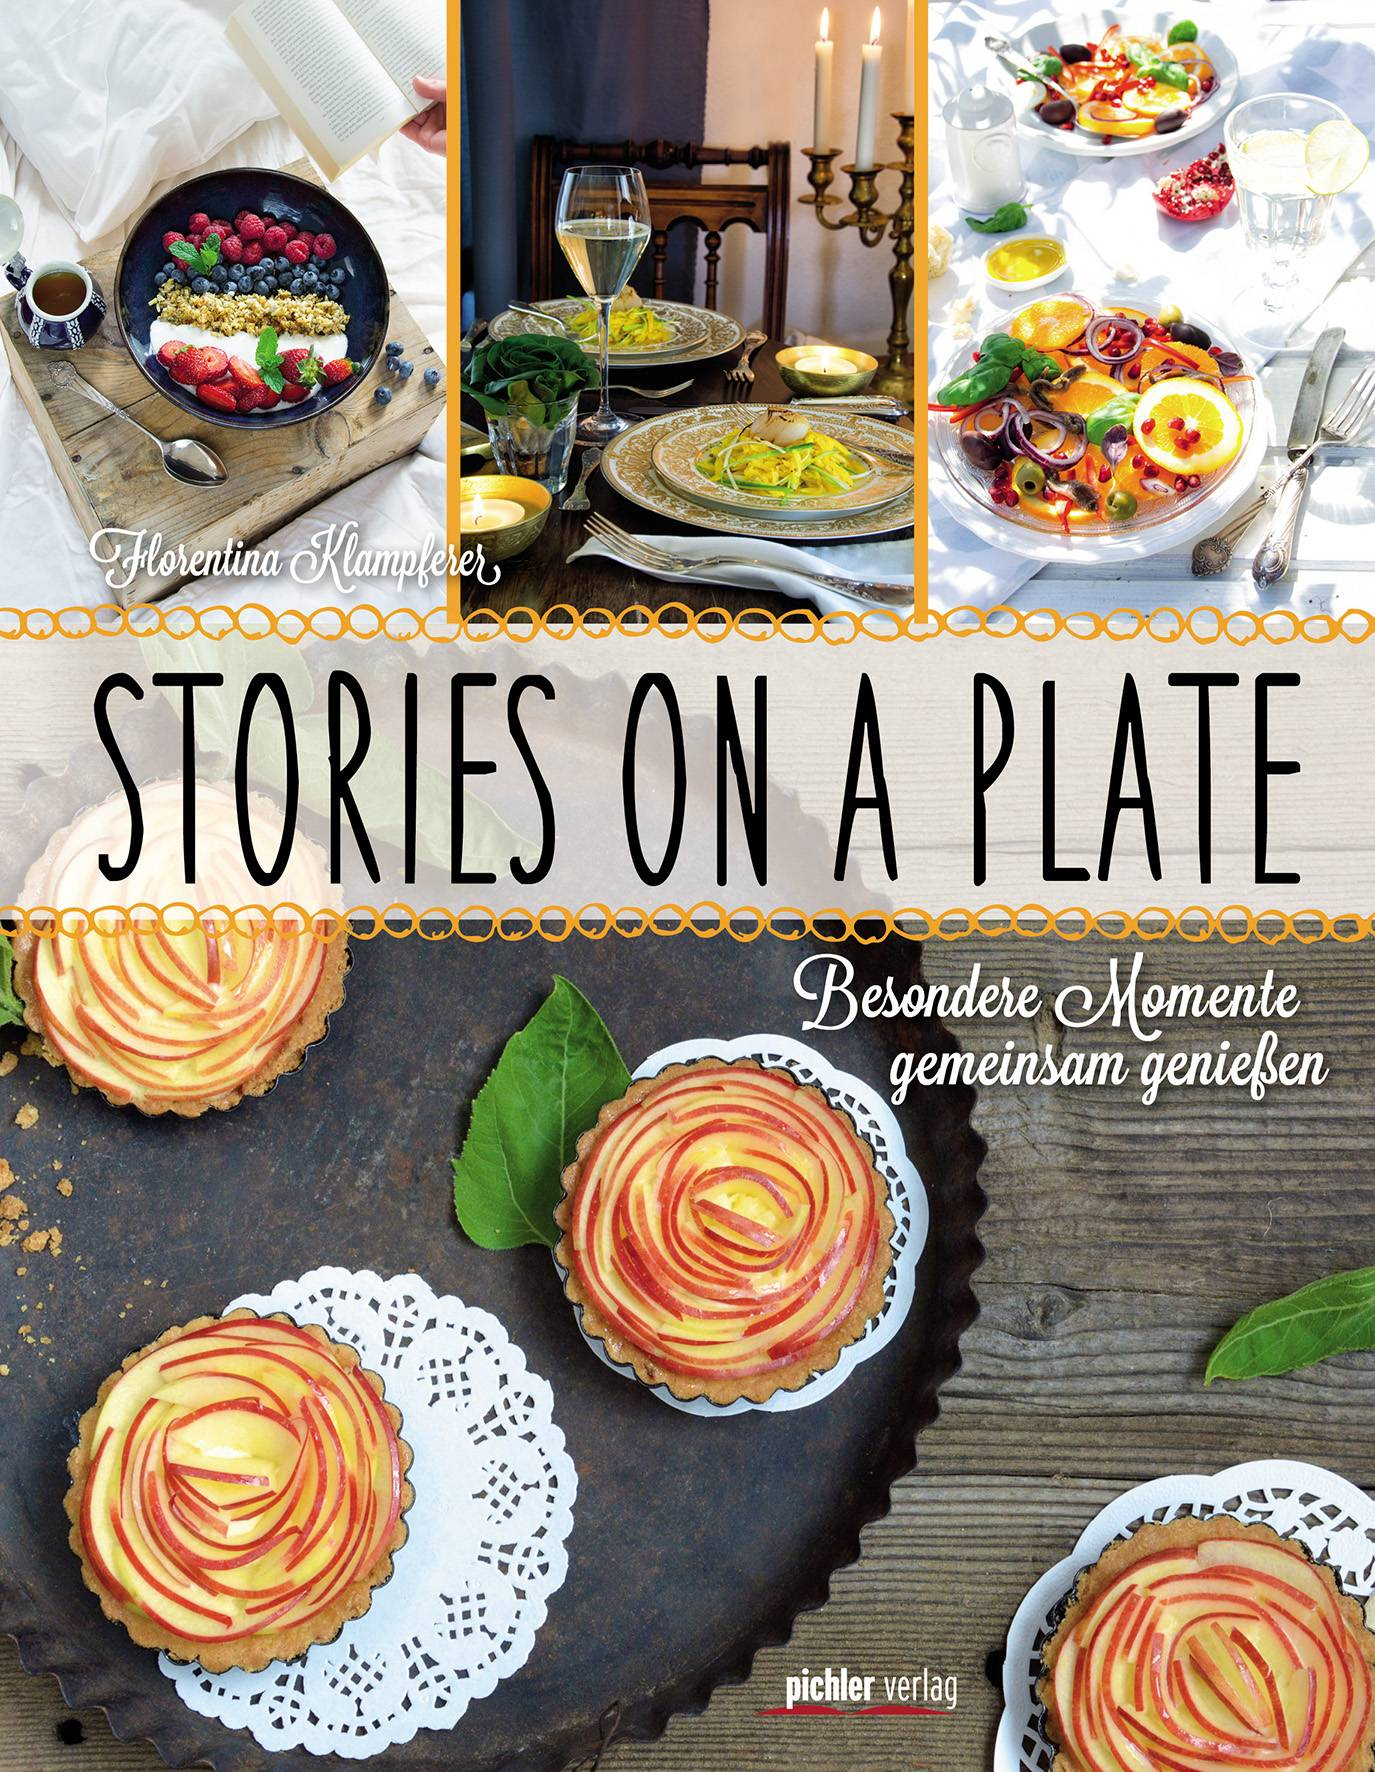 Stories_on_a_plate_01258bdd41